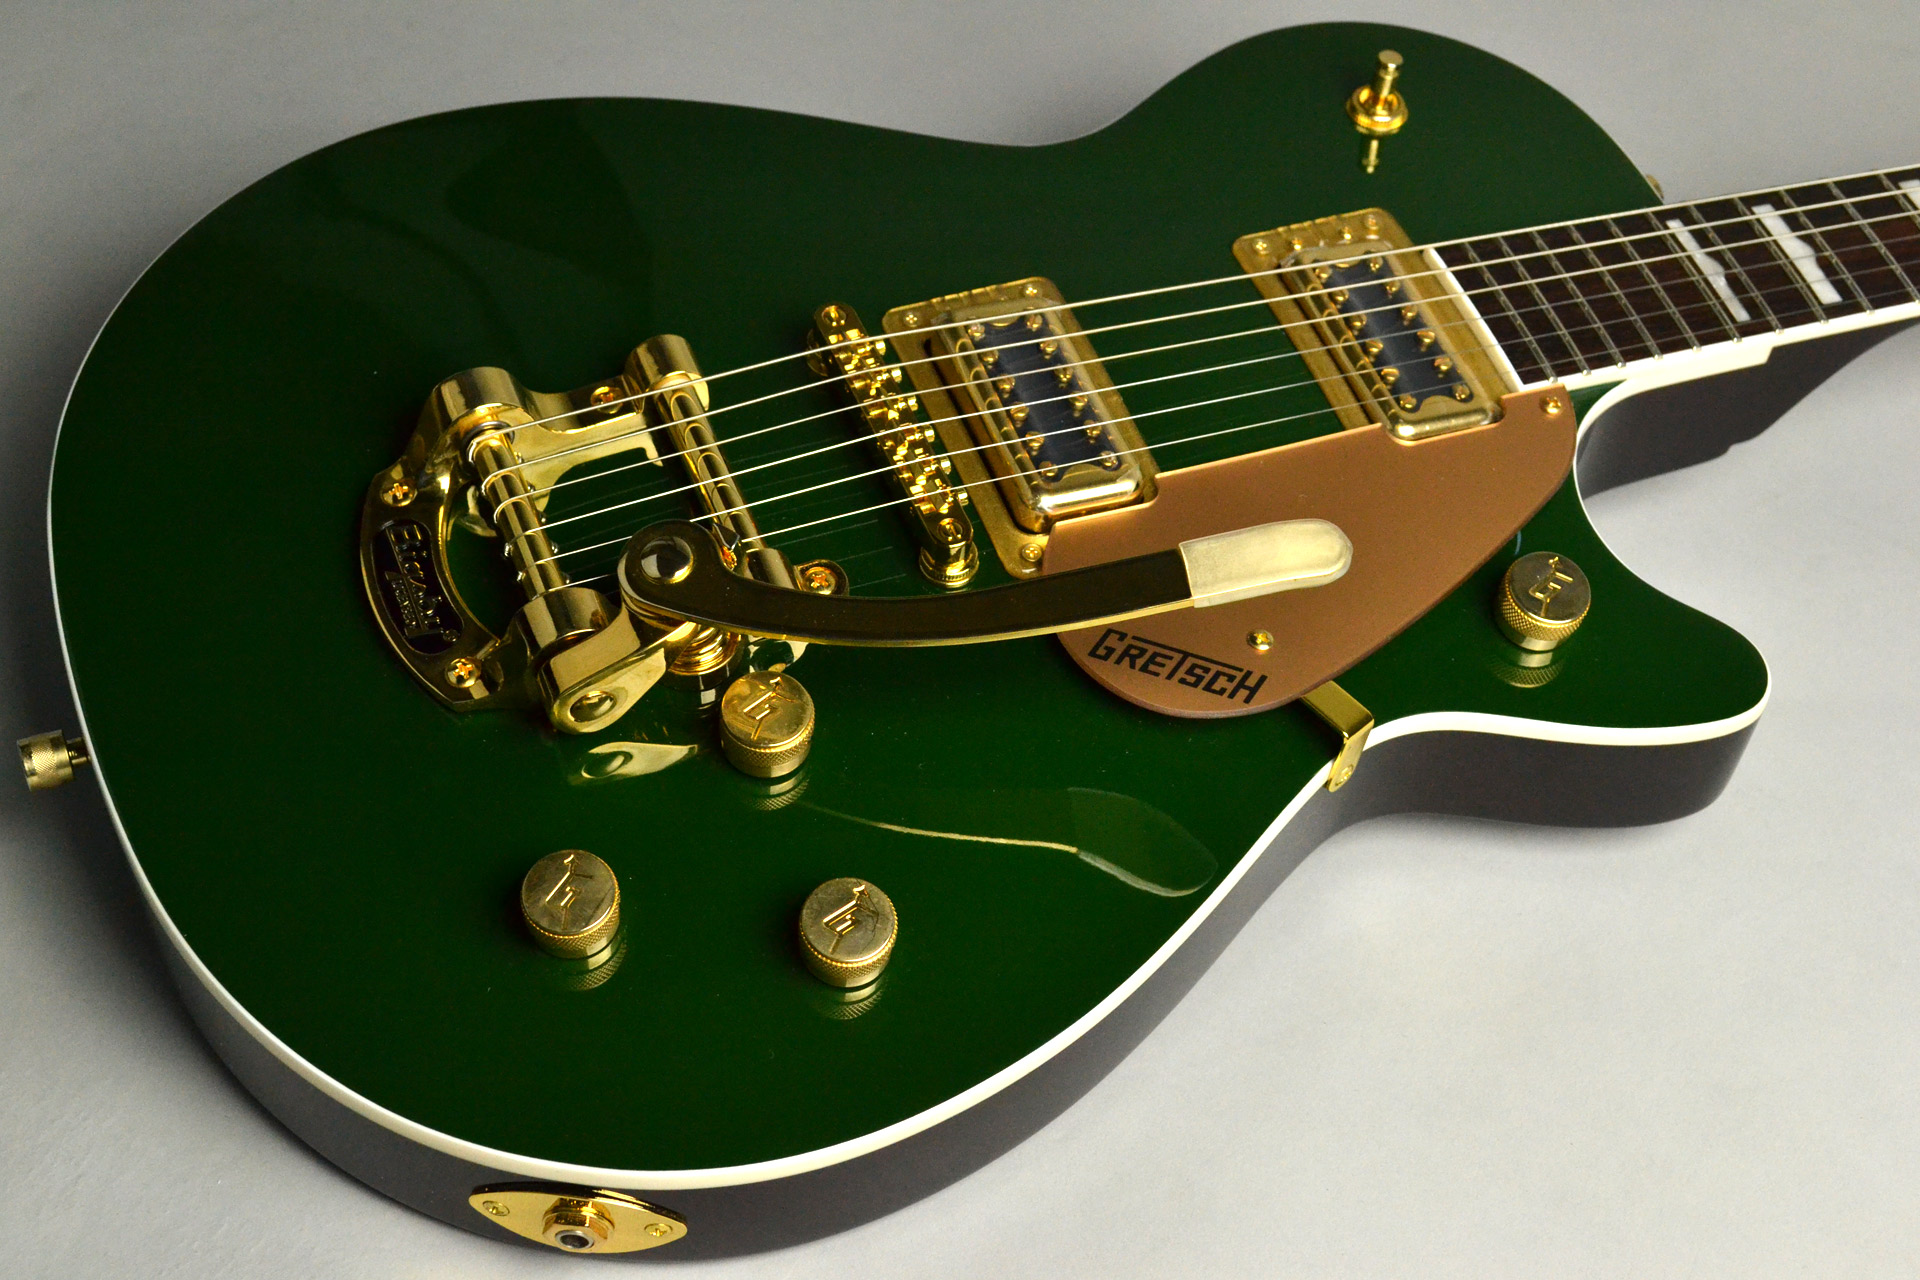 G5435TG Limited Edition Pro Jet™ with Bigsby® Cadillac Greenのボディトップ-アップ画像